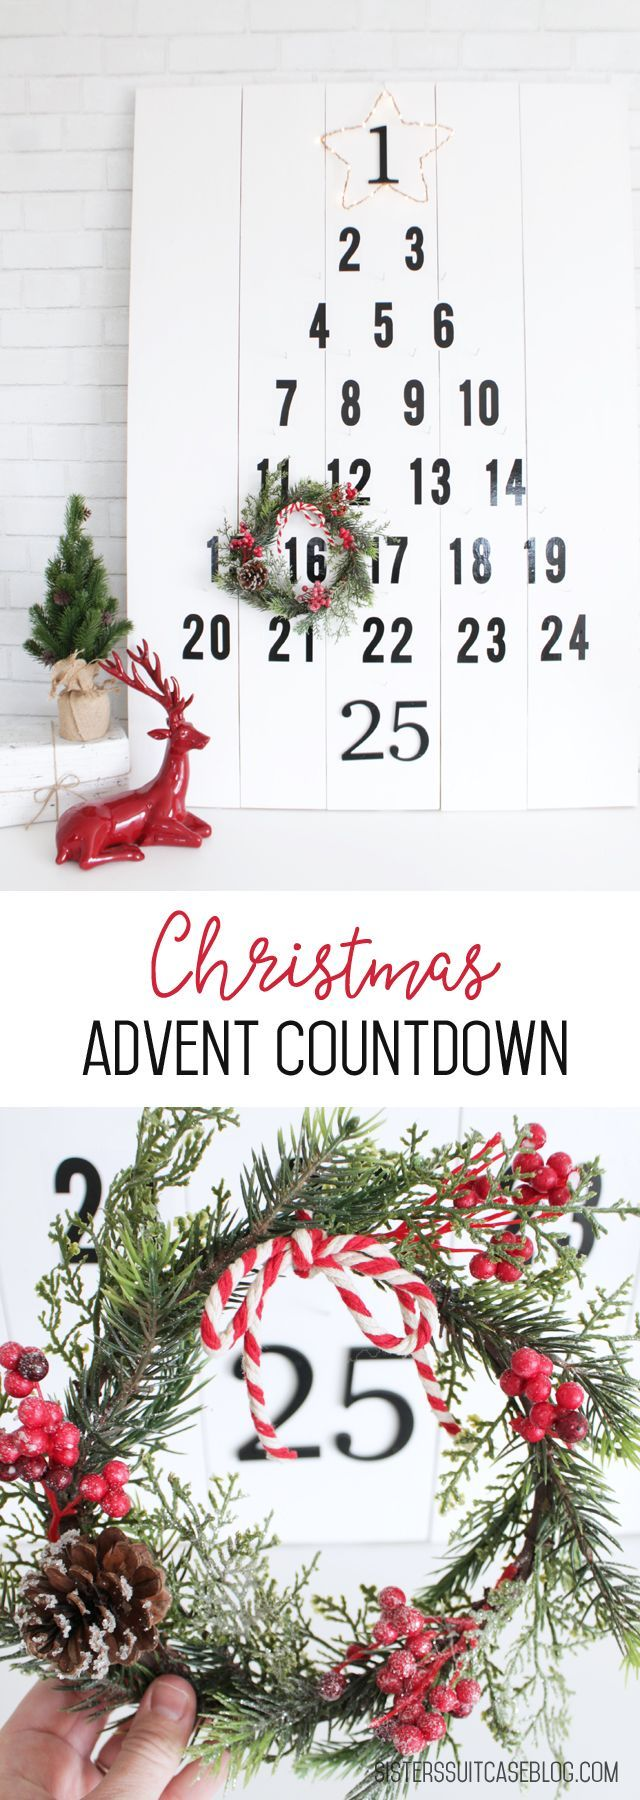 Christmas Tree Advent Countdown tutorial via http://sisterssuitcaseblog.com, or register to make your own at @HomeDepot's #DIHWorkshop #sponsored